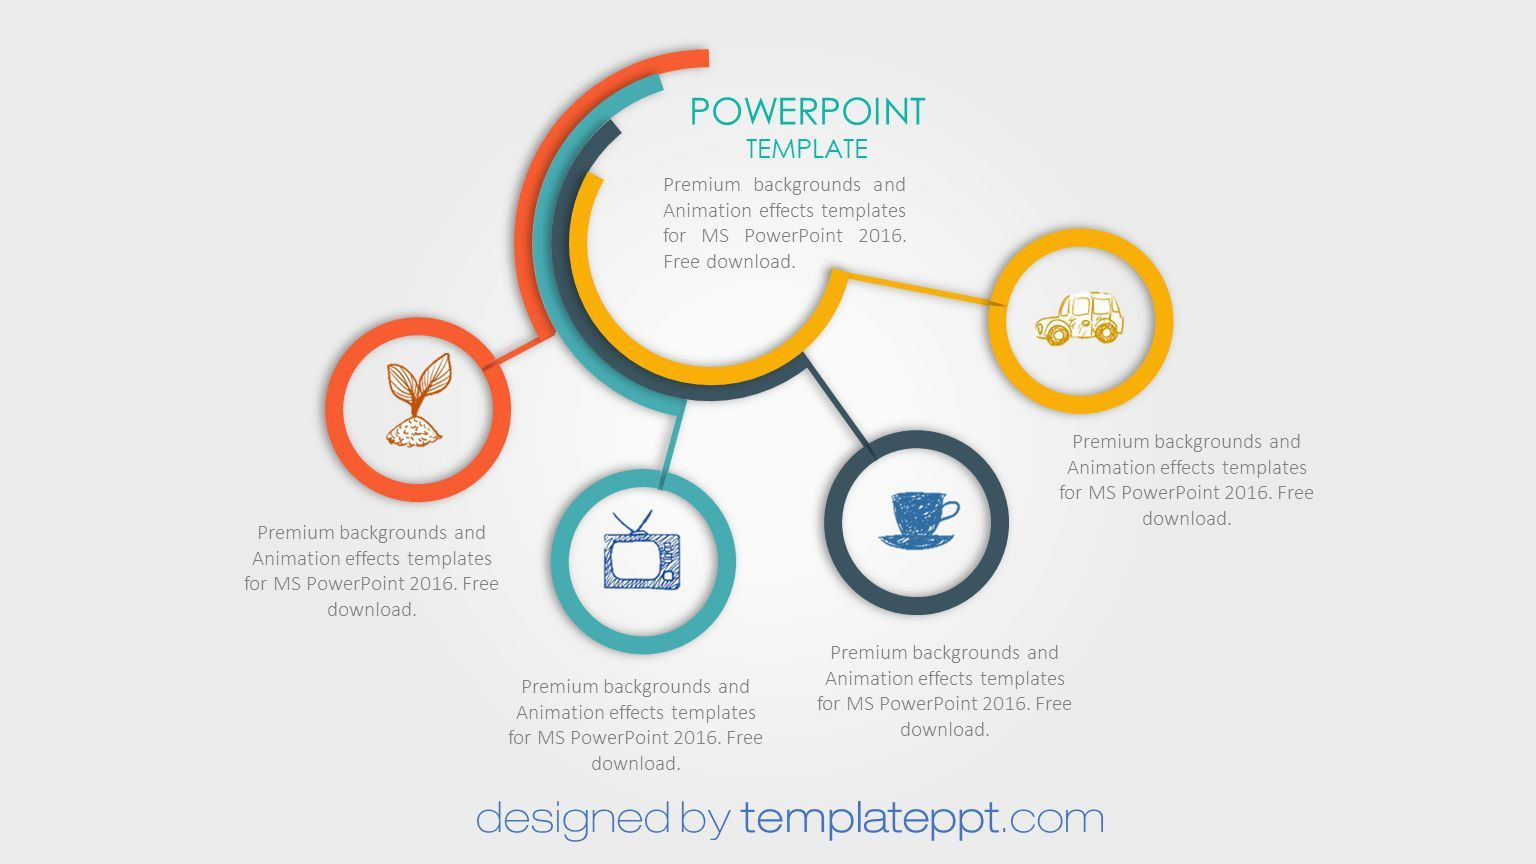 009 Remarkable Animated Powerpoint Template Free Download 2016 Highest Quality  3dFull